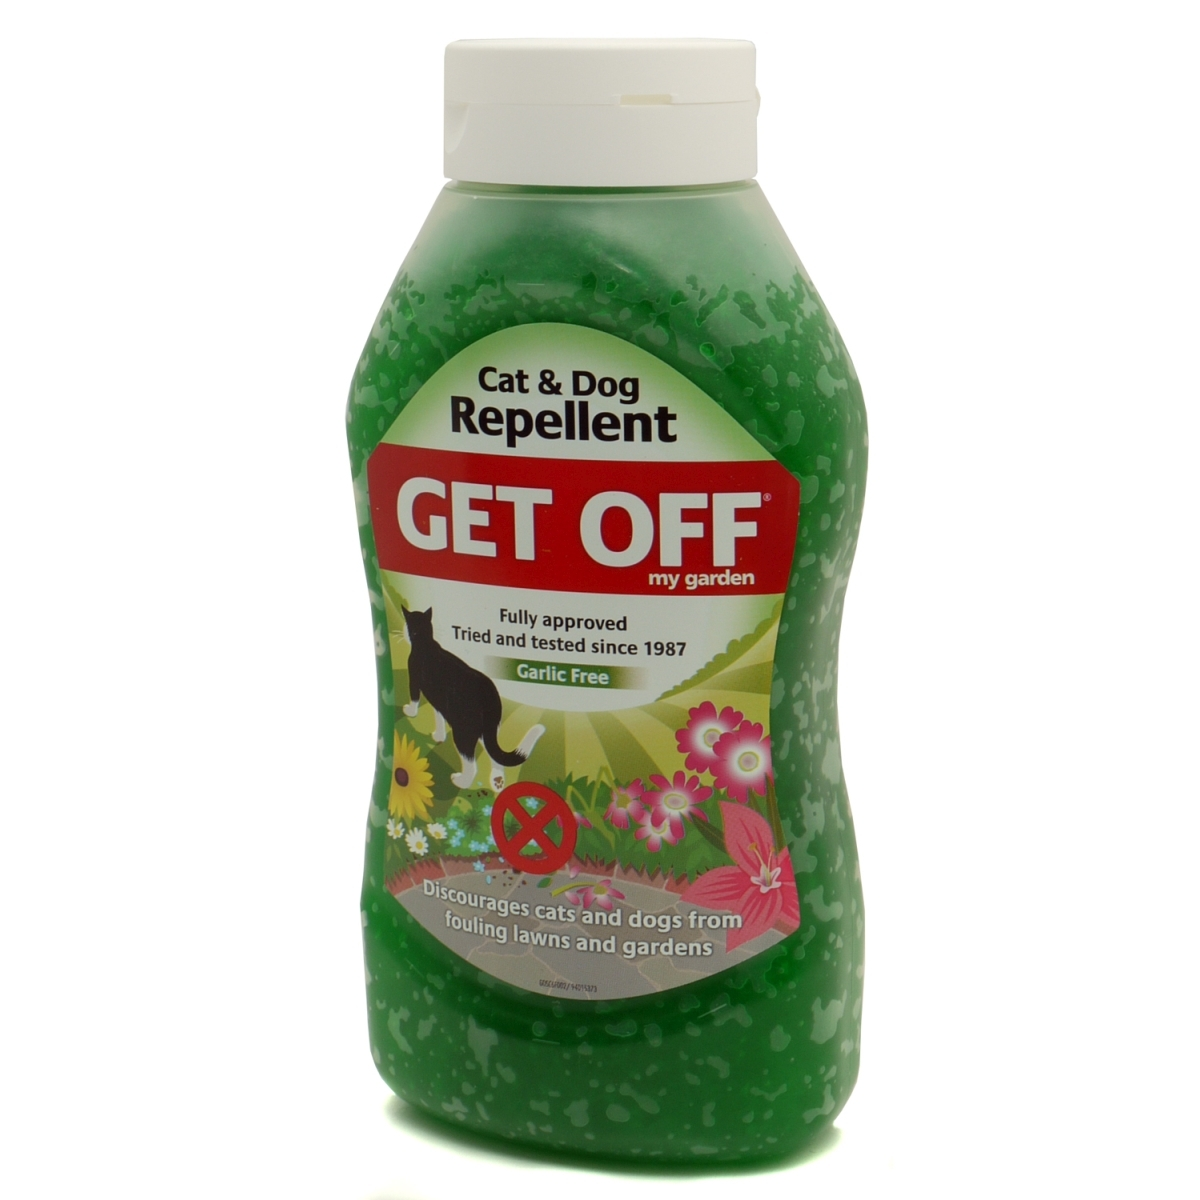 GO CAT&DOG REPELLENT 460GR 00002